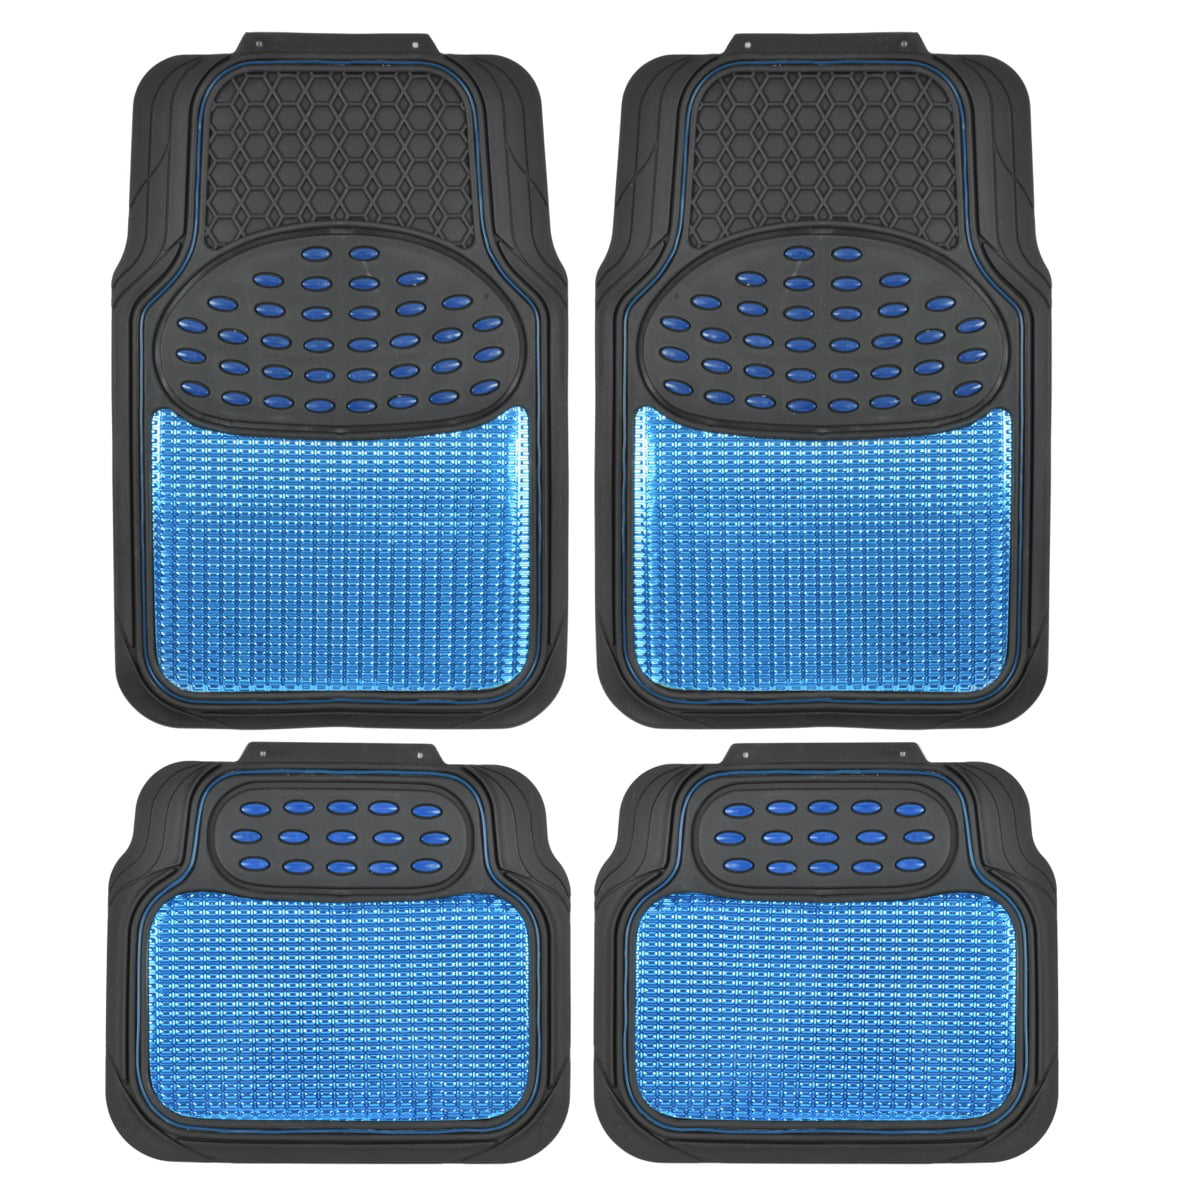 Gray BDK MT-654-GR Heavy Duty 4pc Front and Rear Rubber Floor Mats for Car SUV Van and Truck All Weather Protection Universal Fit